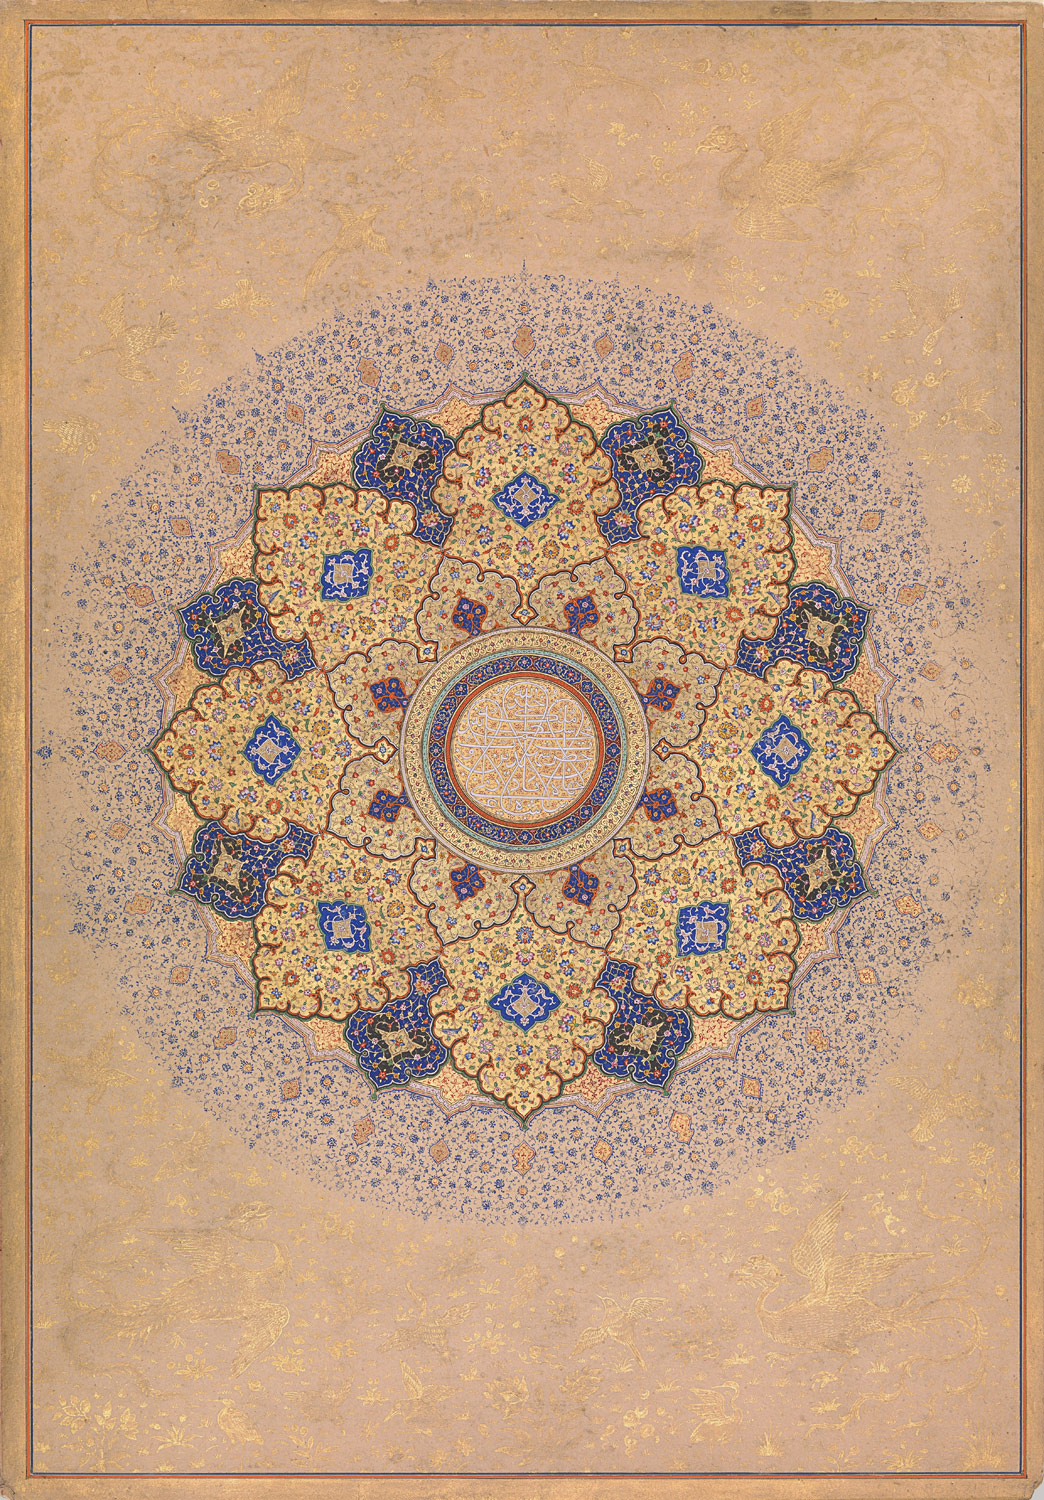 Rosette (shamsa) bearing the name and titles of Emperor Shah Jahan (r. 1628–58), Mughal, 17th century